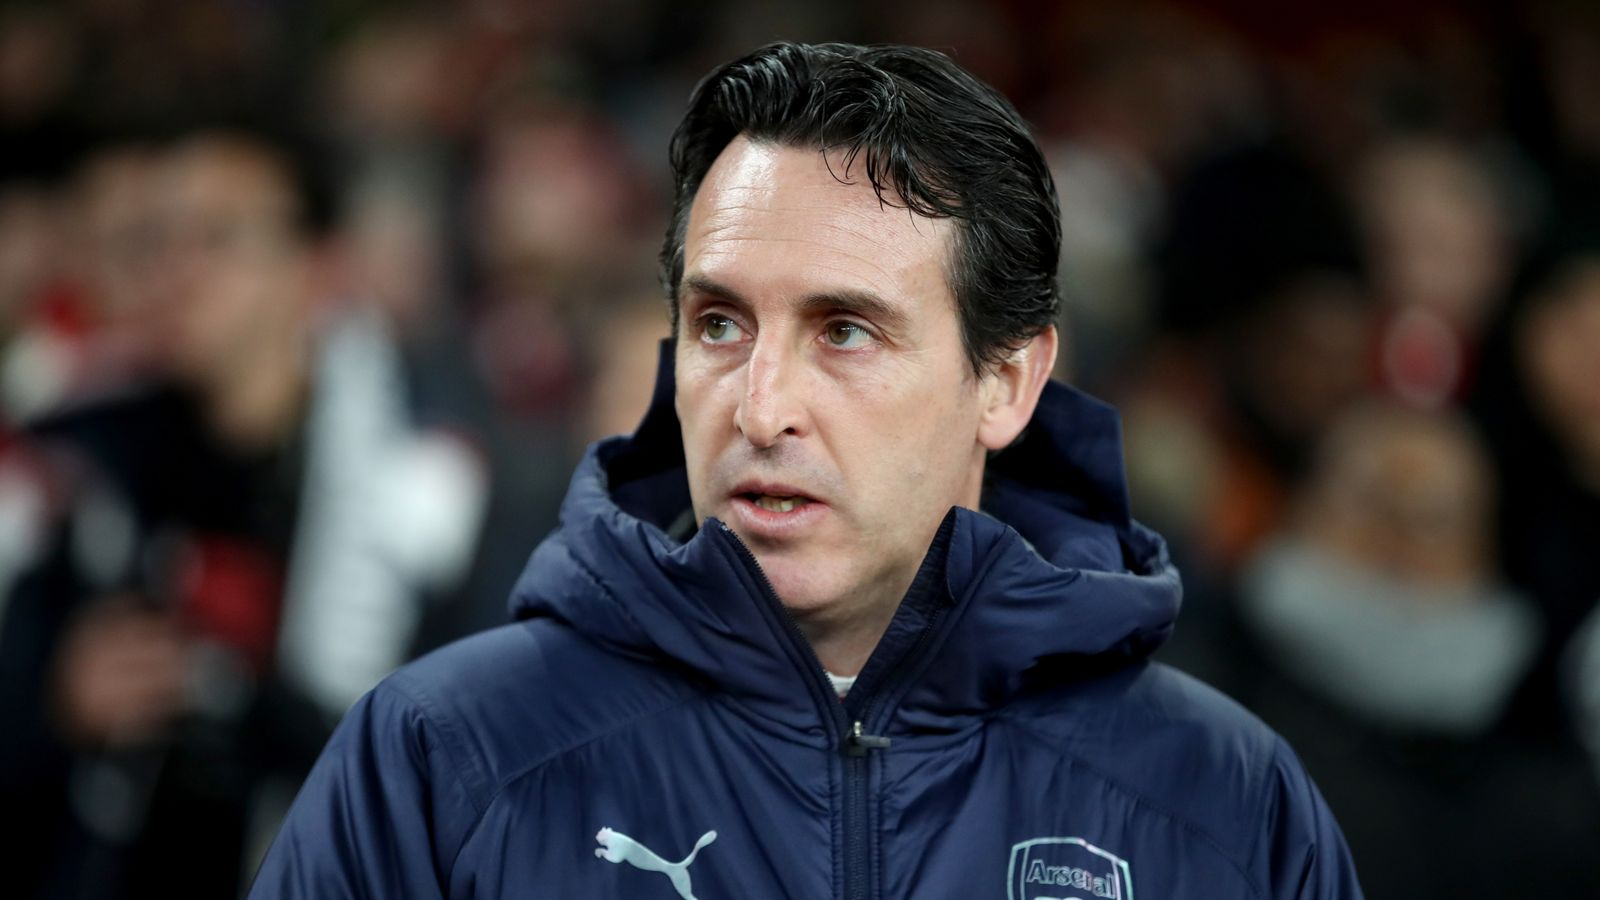 fcf5fc8443 Unai Emery faces FA investigation for kicking bottle at Brighton fans |  Football News | Sky Sports